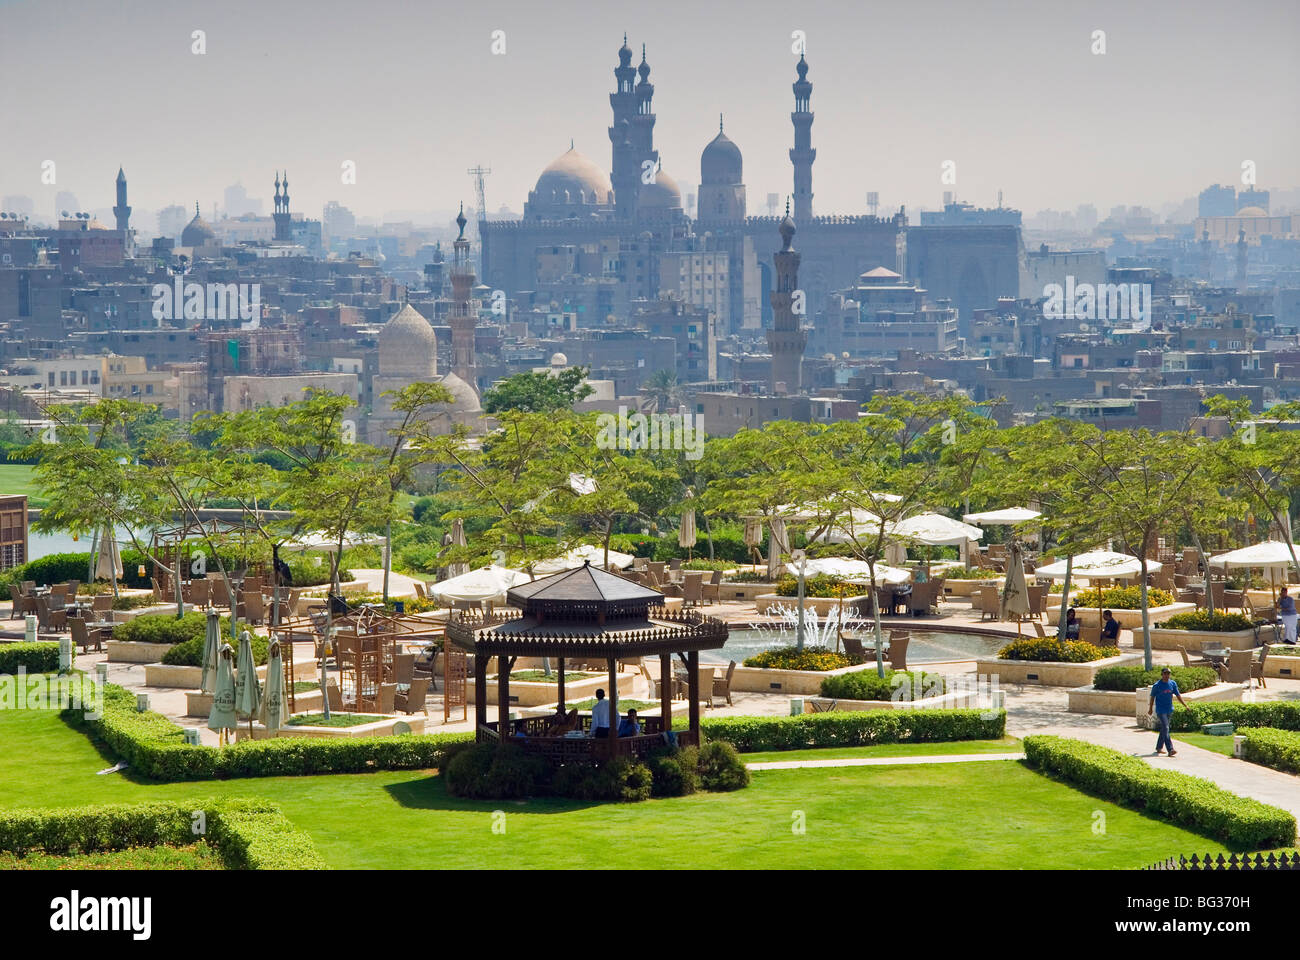 Al Azhar park and Islamic area, Cairo, Egypt, North Africa, Africa - Stock Image